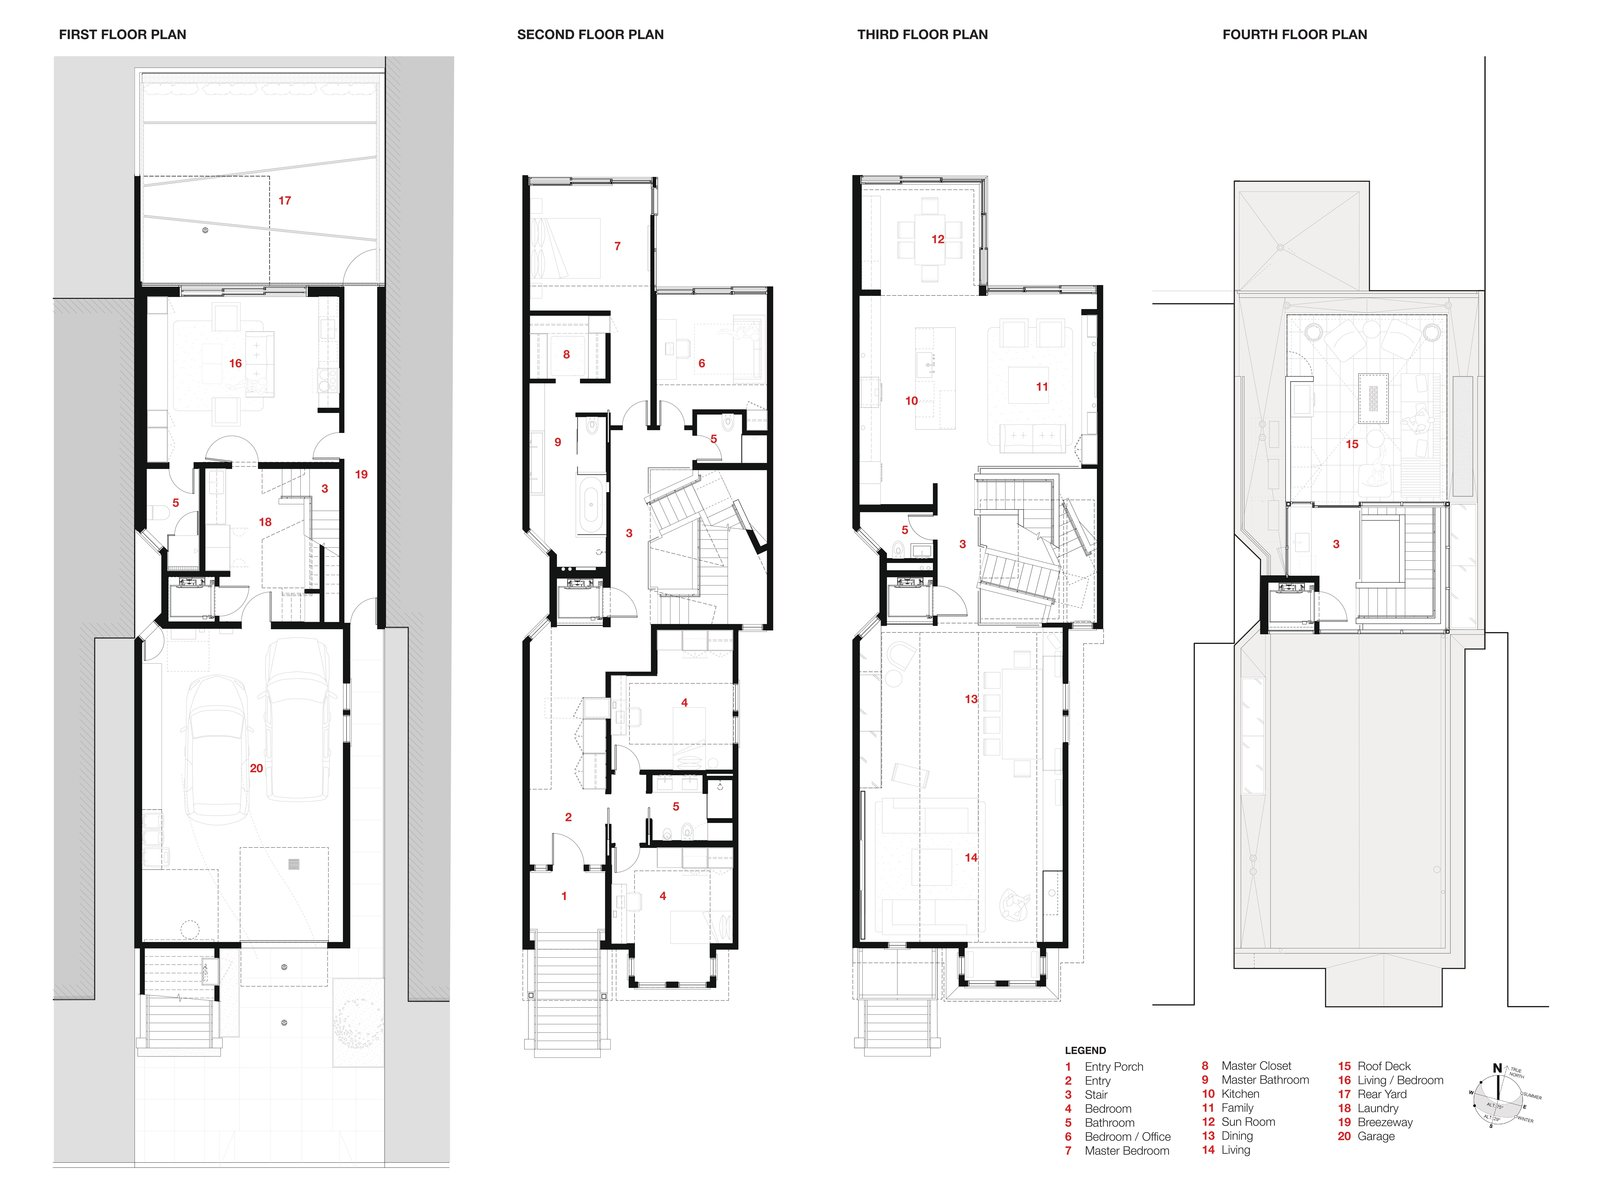 San francisco victorian houses floor plans for Floor design sf